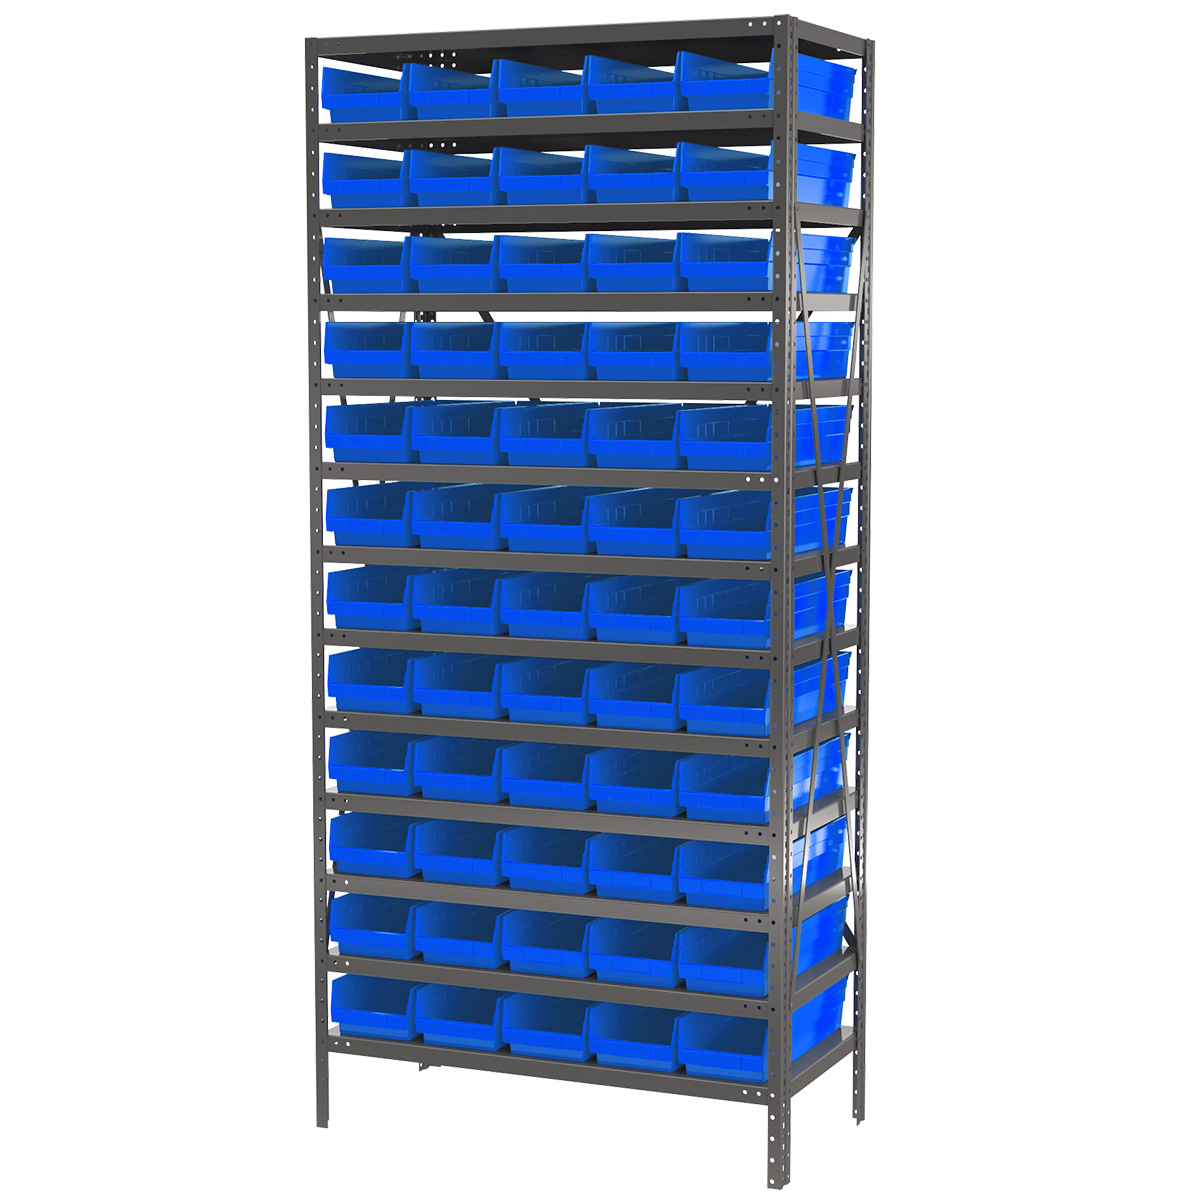 Steel Shelving Kit, 18x36x79, 60 Bins, Gray/Blue.  This item sold in carton quantities of 1.